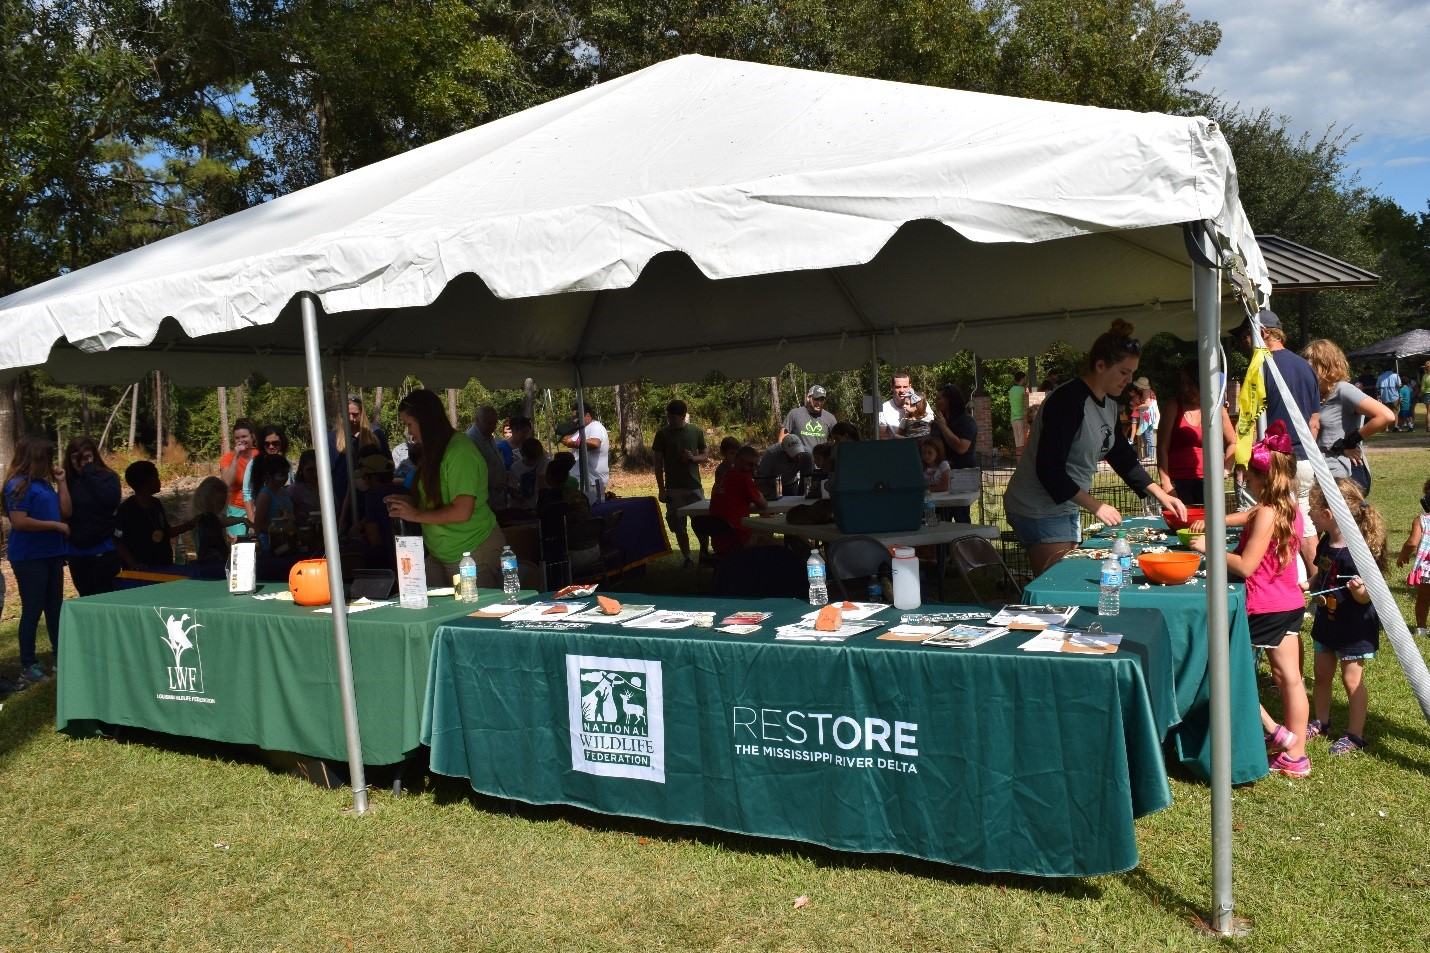 National Wildlife Federation and Louisiana Wildlife Federation tables and activities at the Bayou Lacombe Center during & Looking Back at the 19th Annual Wild Things Festival | Oct. 15 2016